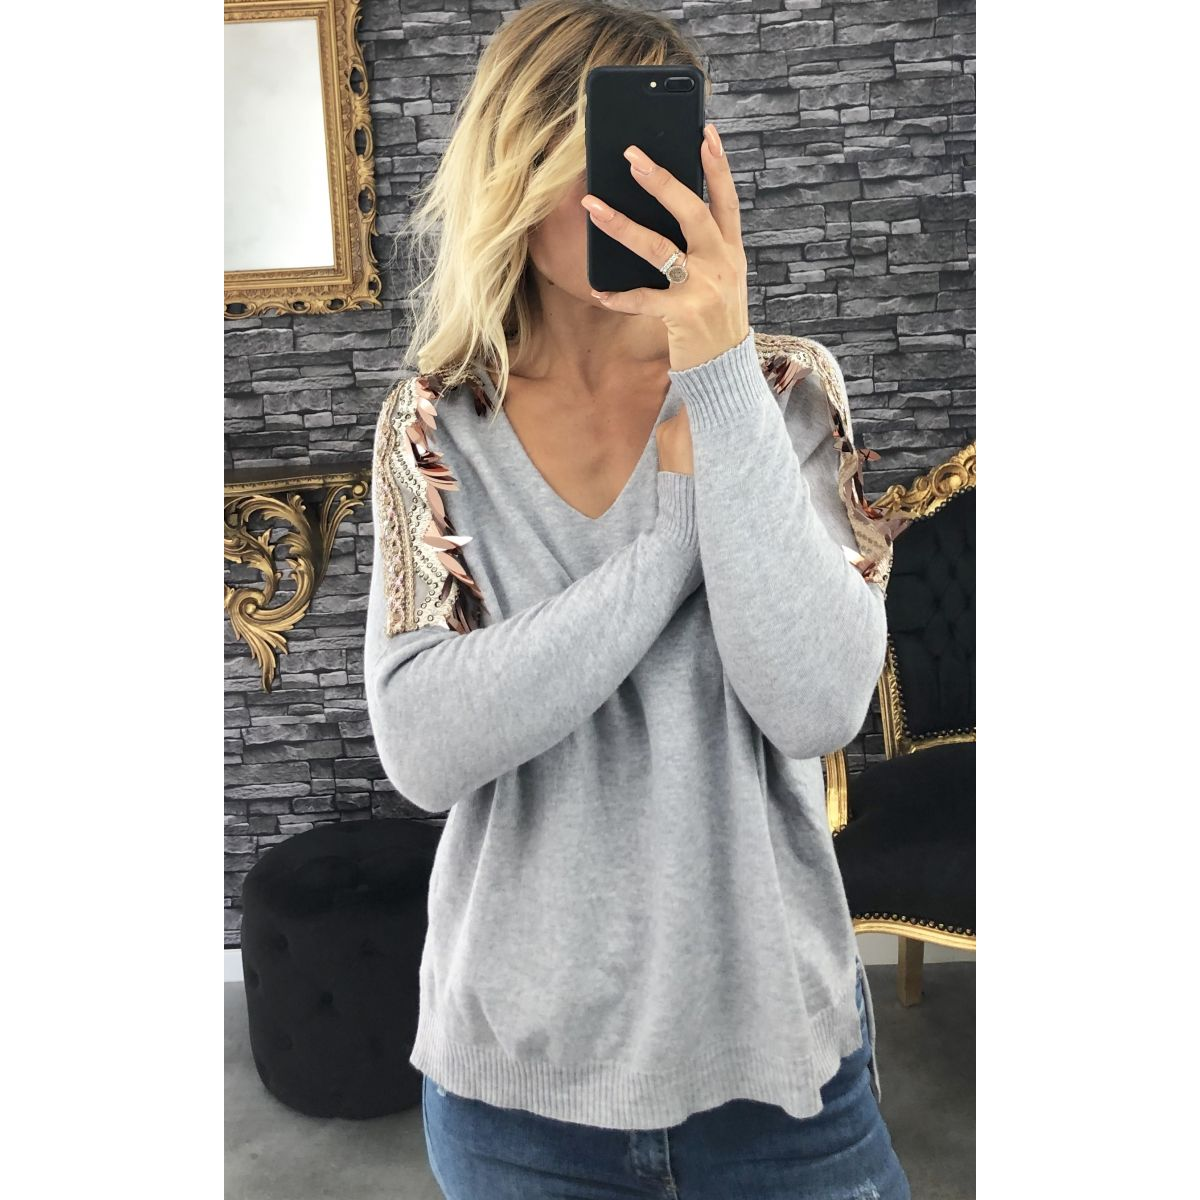 Pull coupe oversise épaule joli sequin gris